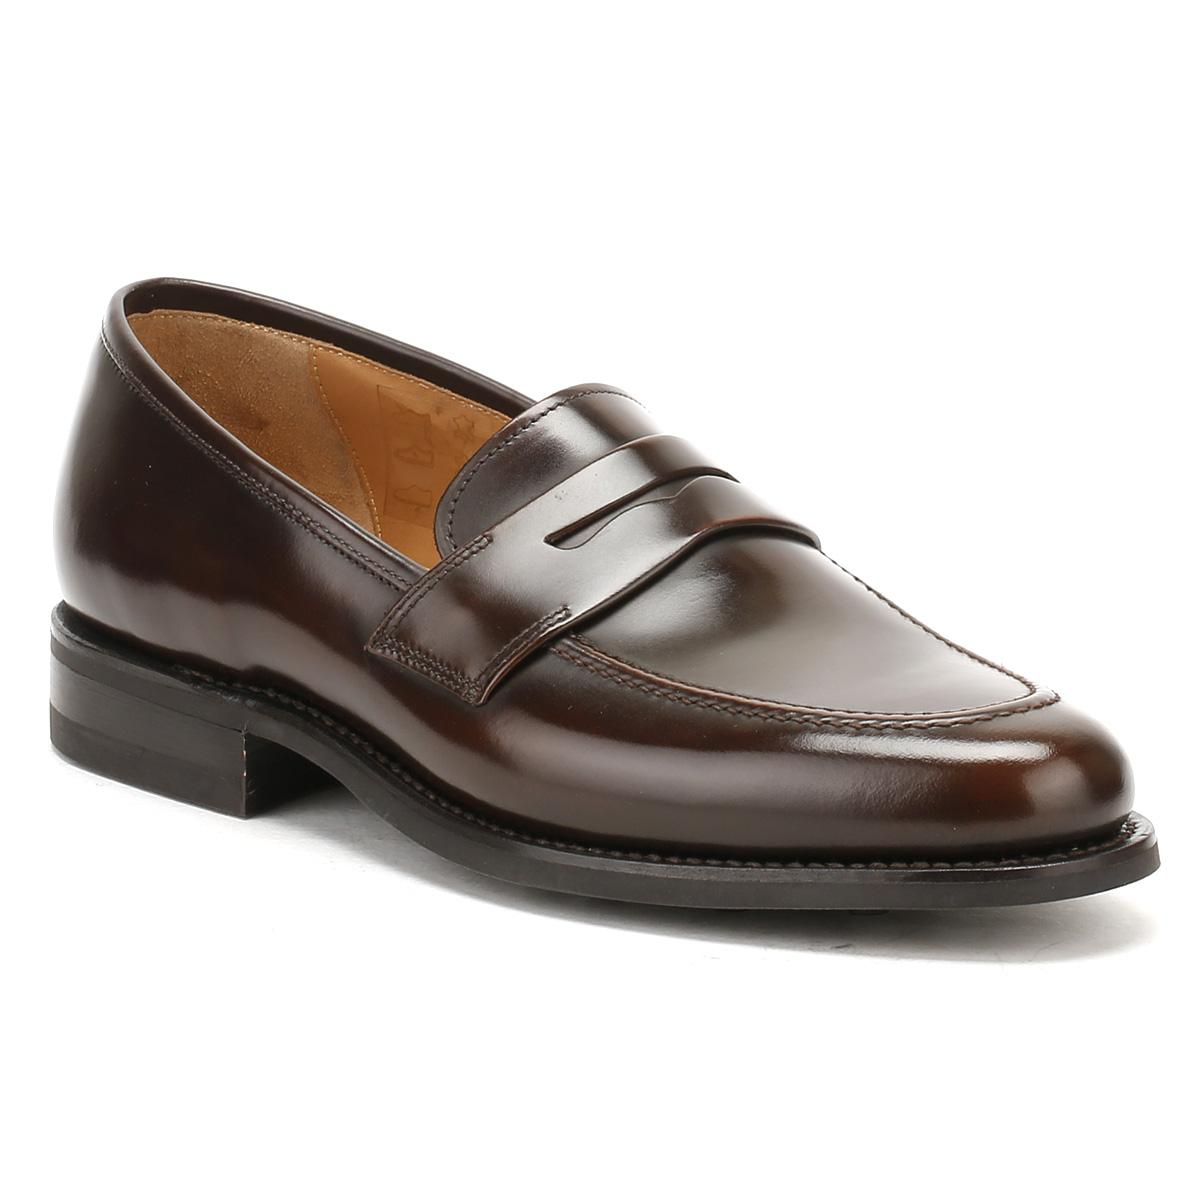 1ef9b5b52023 Loake Mens Dark Brown Leather 211 Loafers in Brown for Men - Lyst